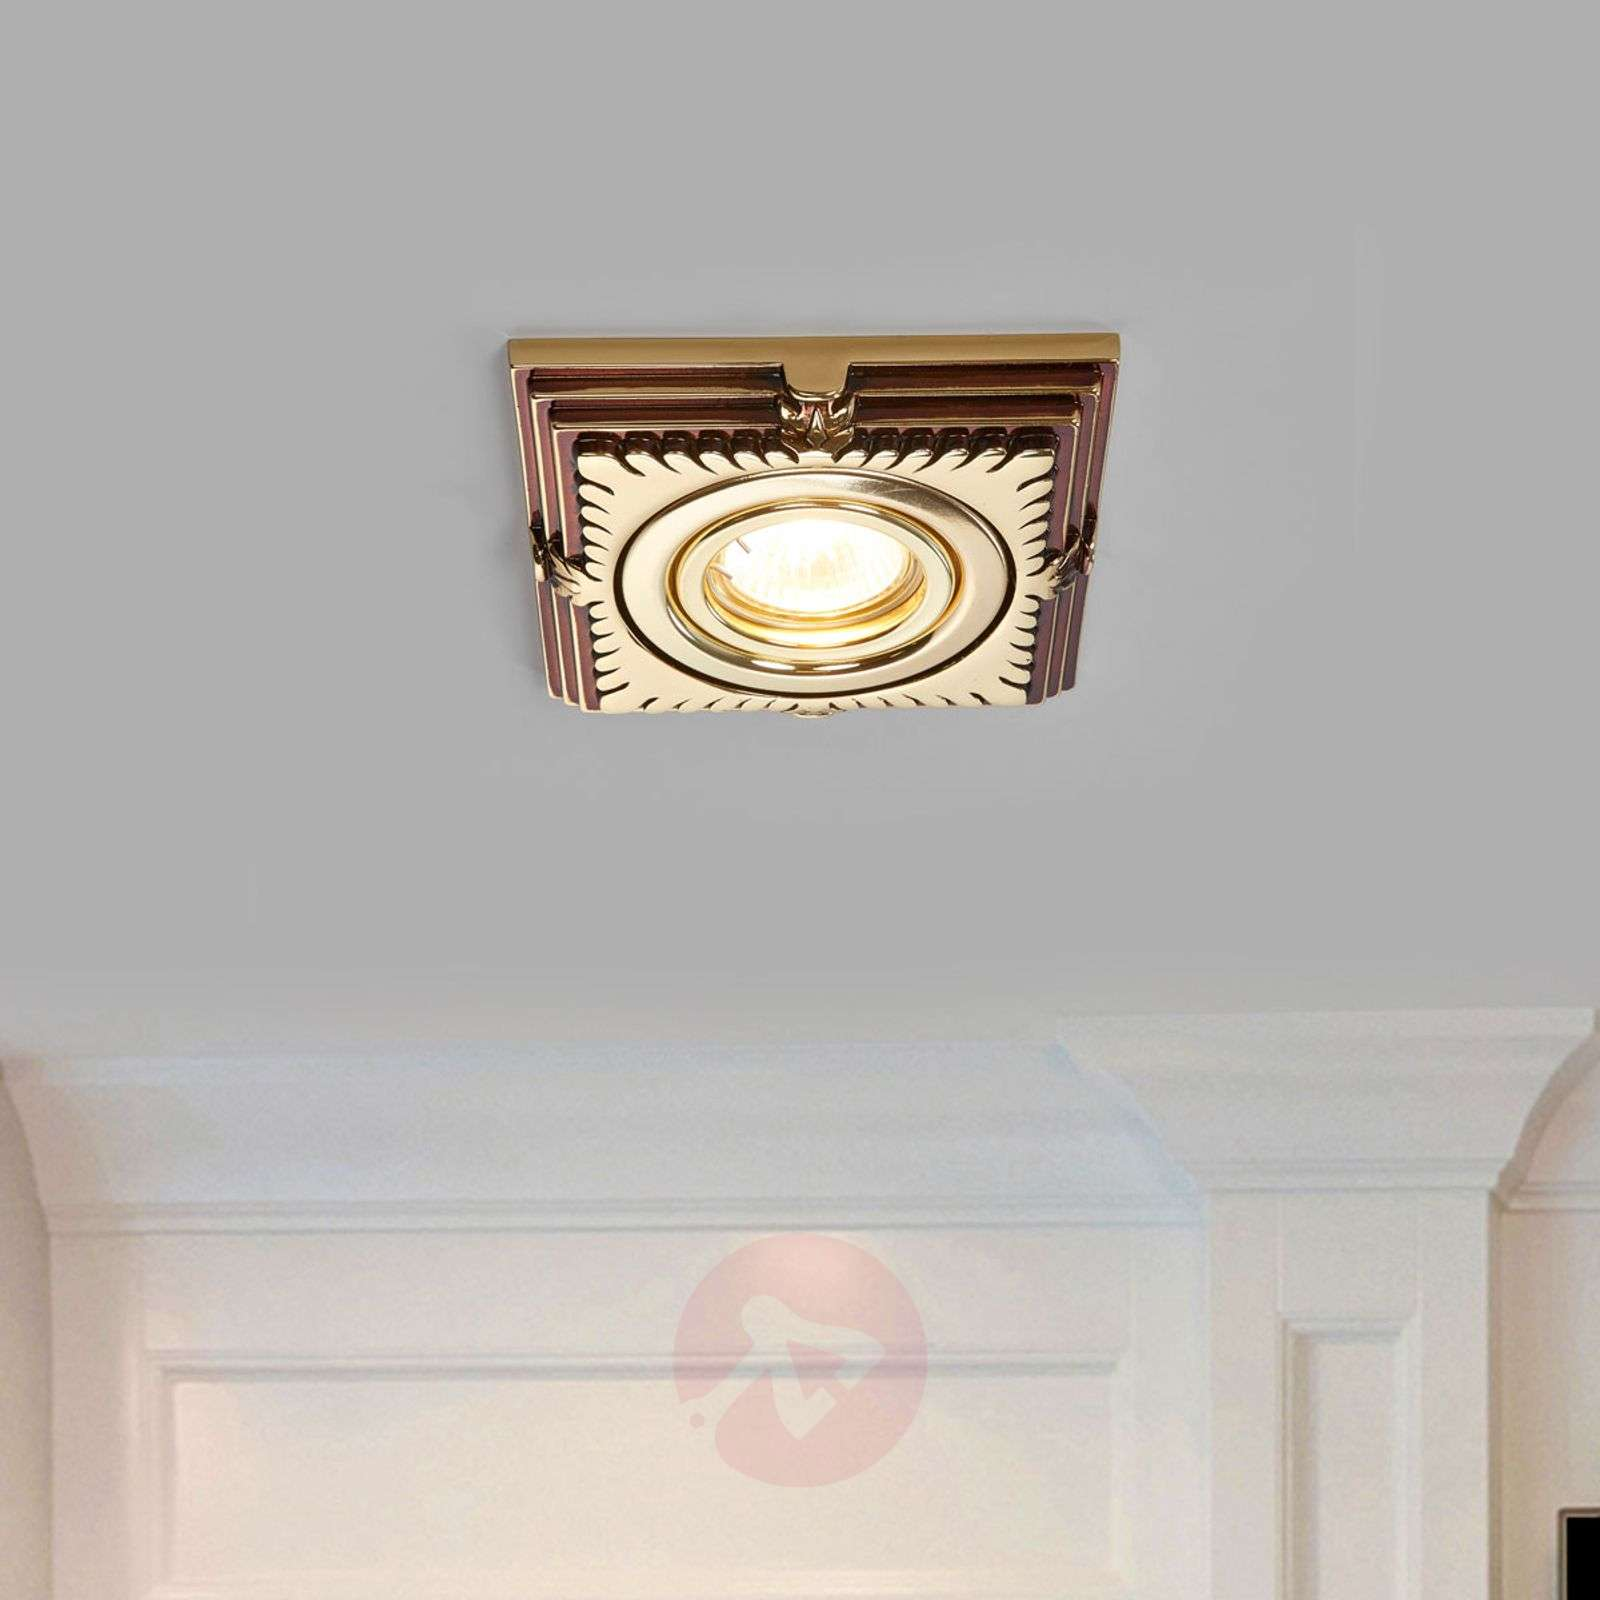 Square recessed light yago lights square recessed light yago 8023125 01 aloadofball Gallery